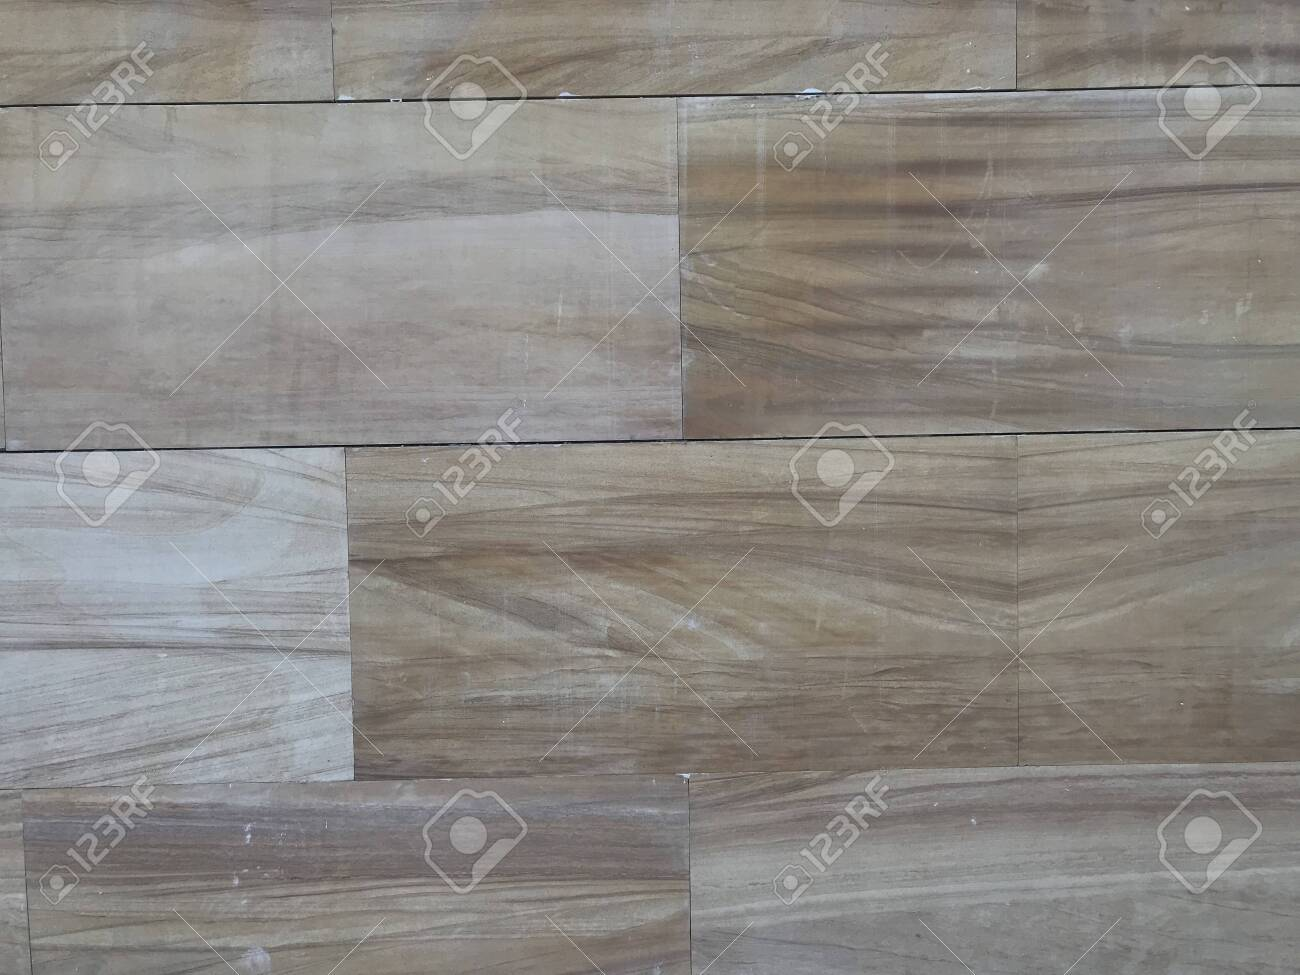 wall tiles designed like laminate wood grains pattern for an